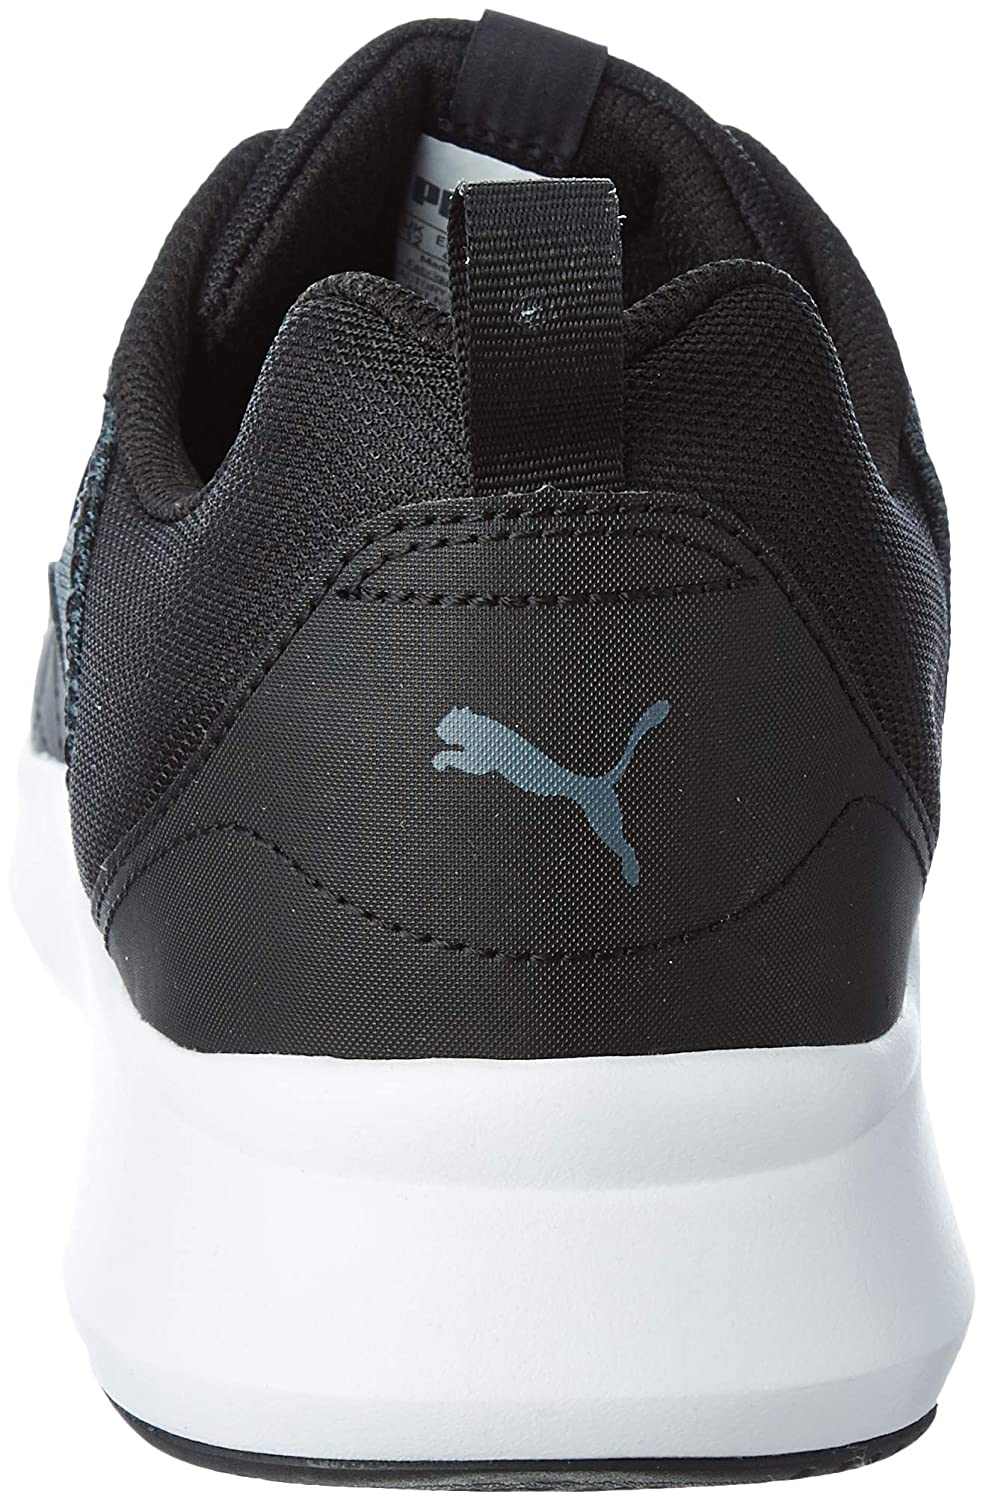 d22bc3b86741 Puma Boy s Wired Knit Sneakers  Buy Online at Low Prices in India -  Amazon.in